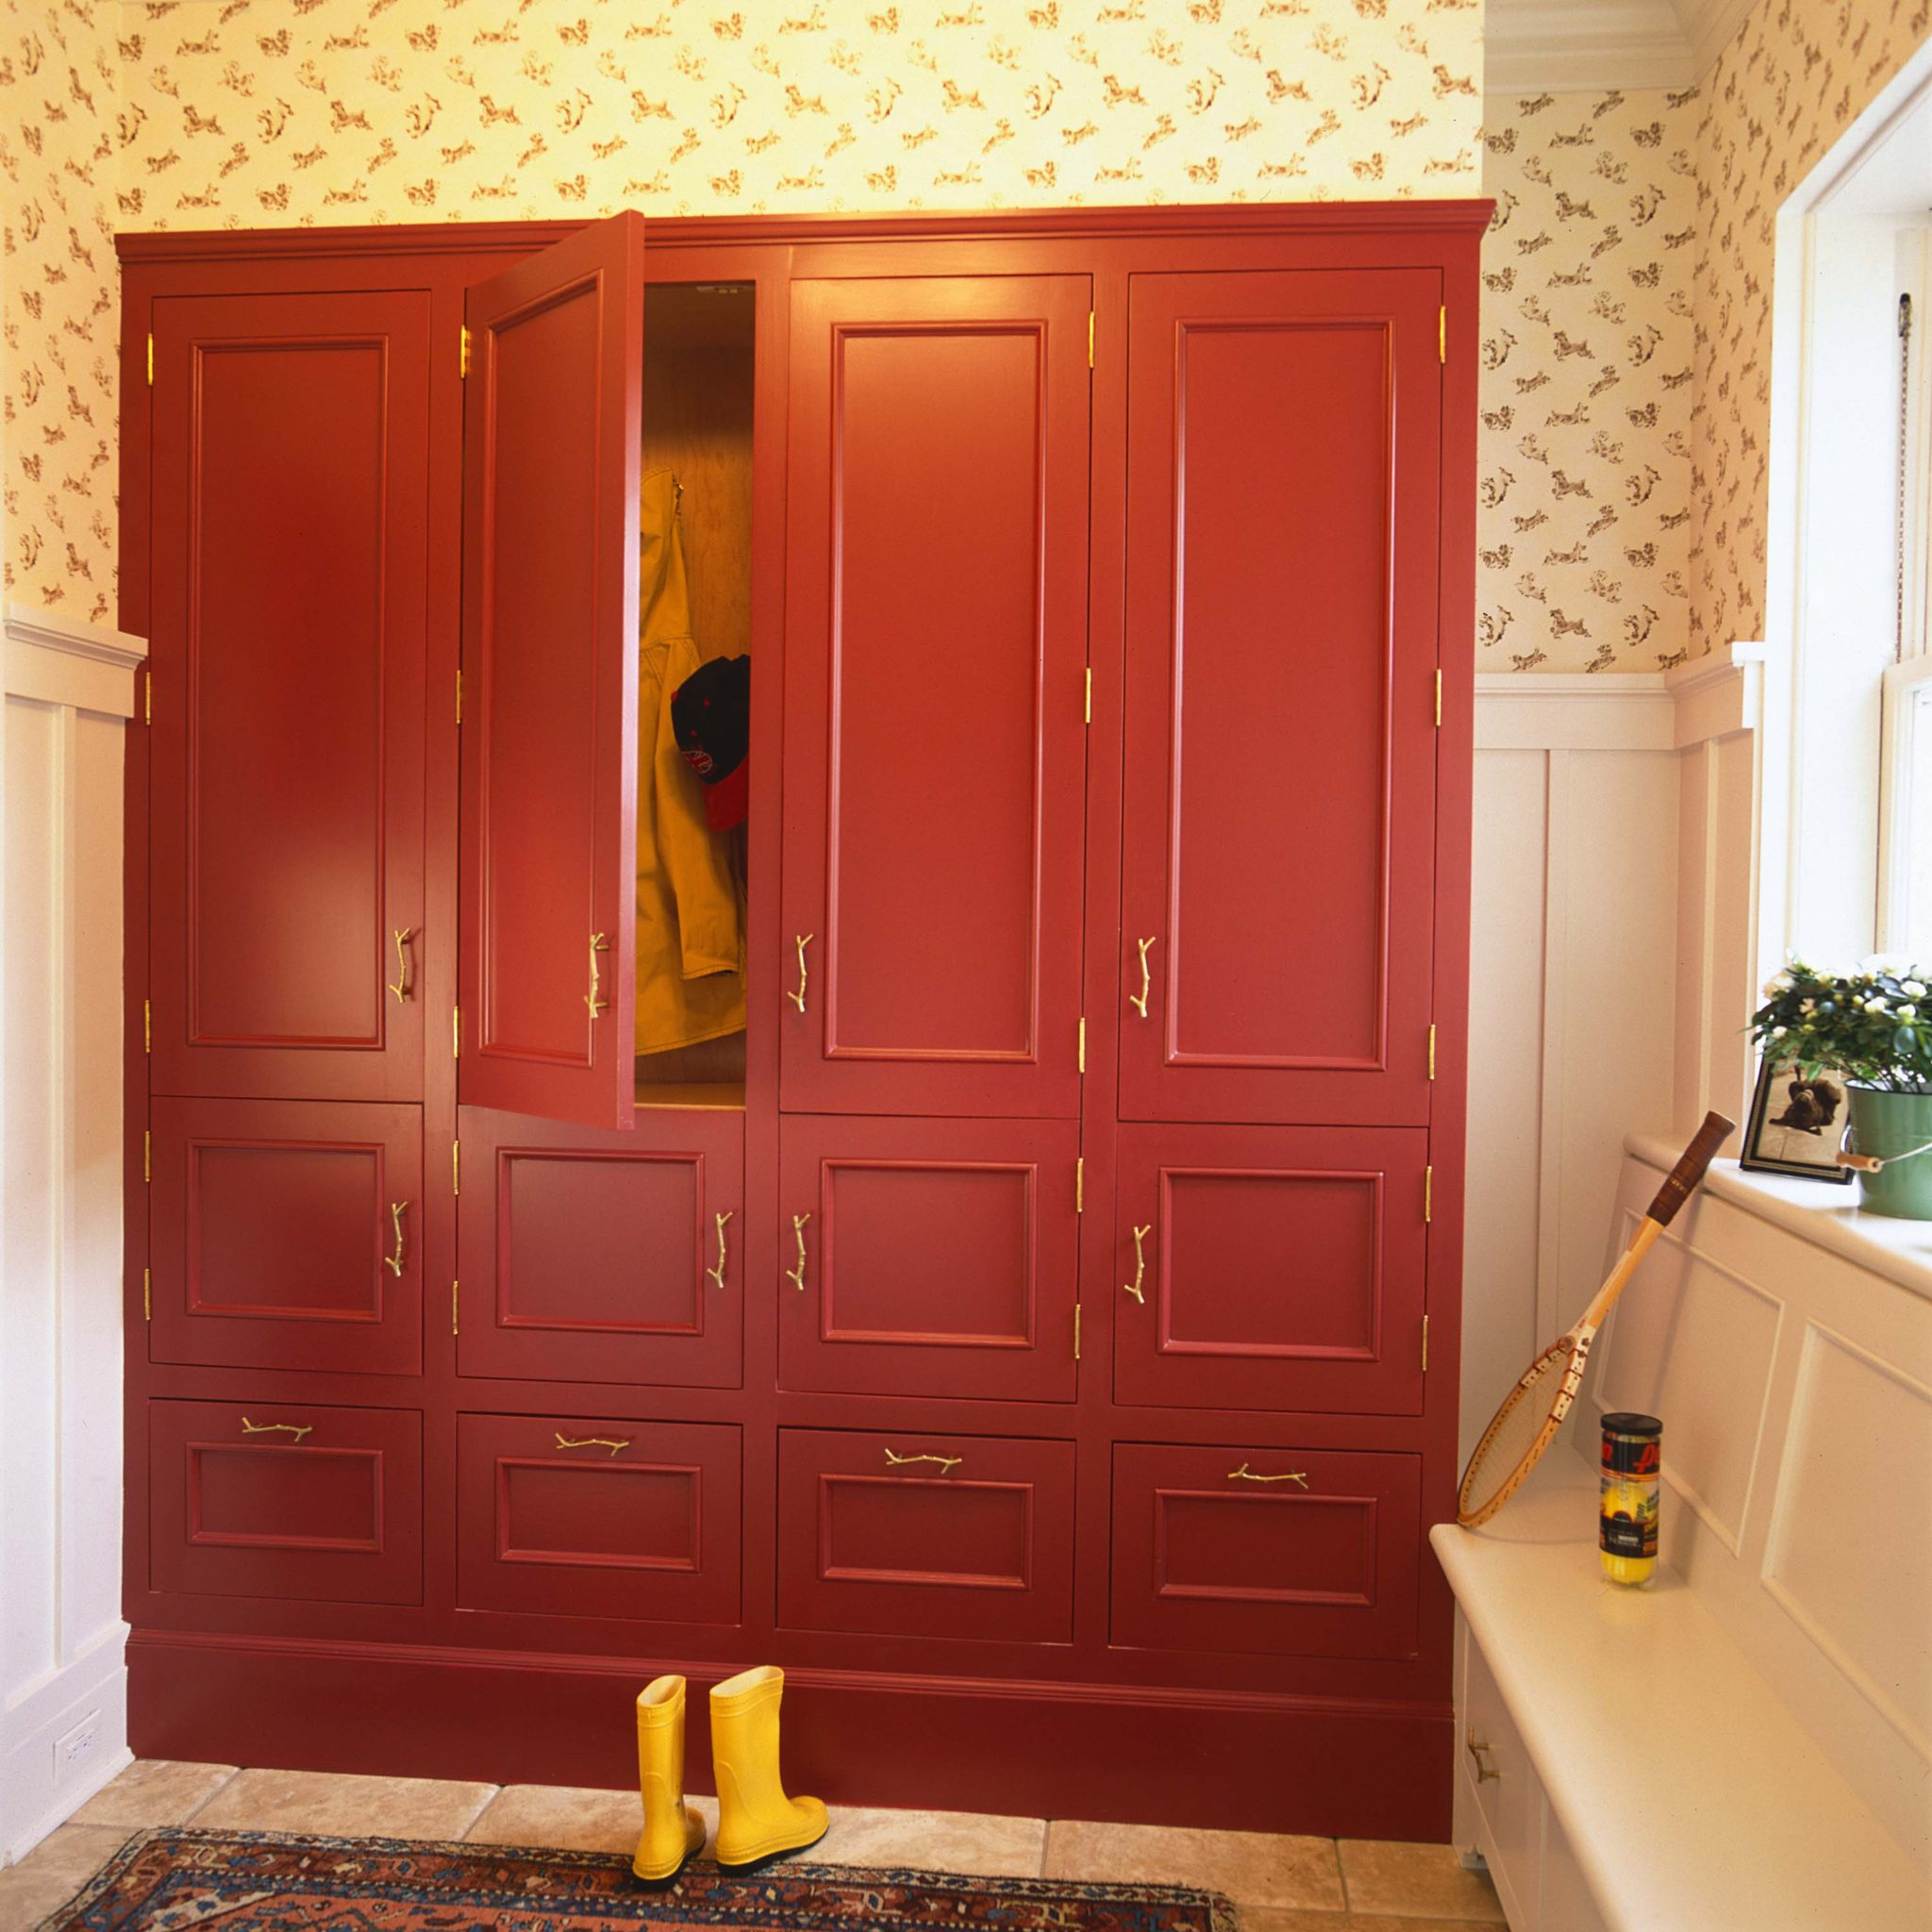 Mudroom with red cabinets by Huestis Tucker Architects, LLC